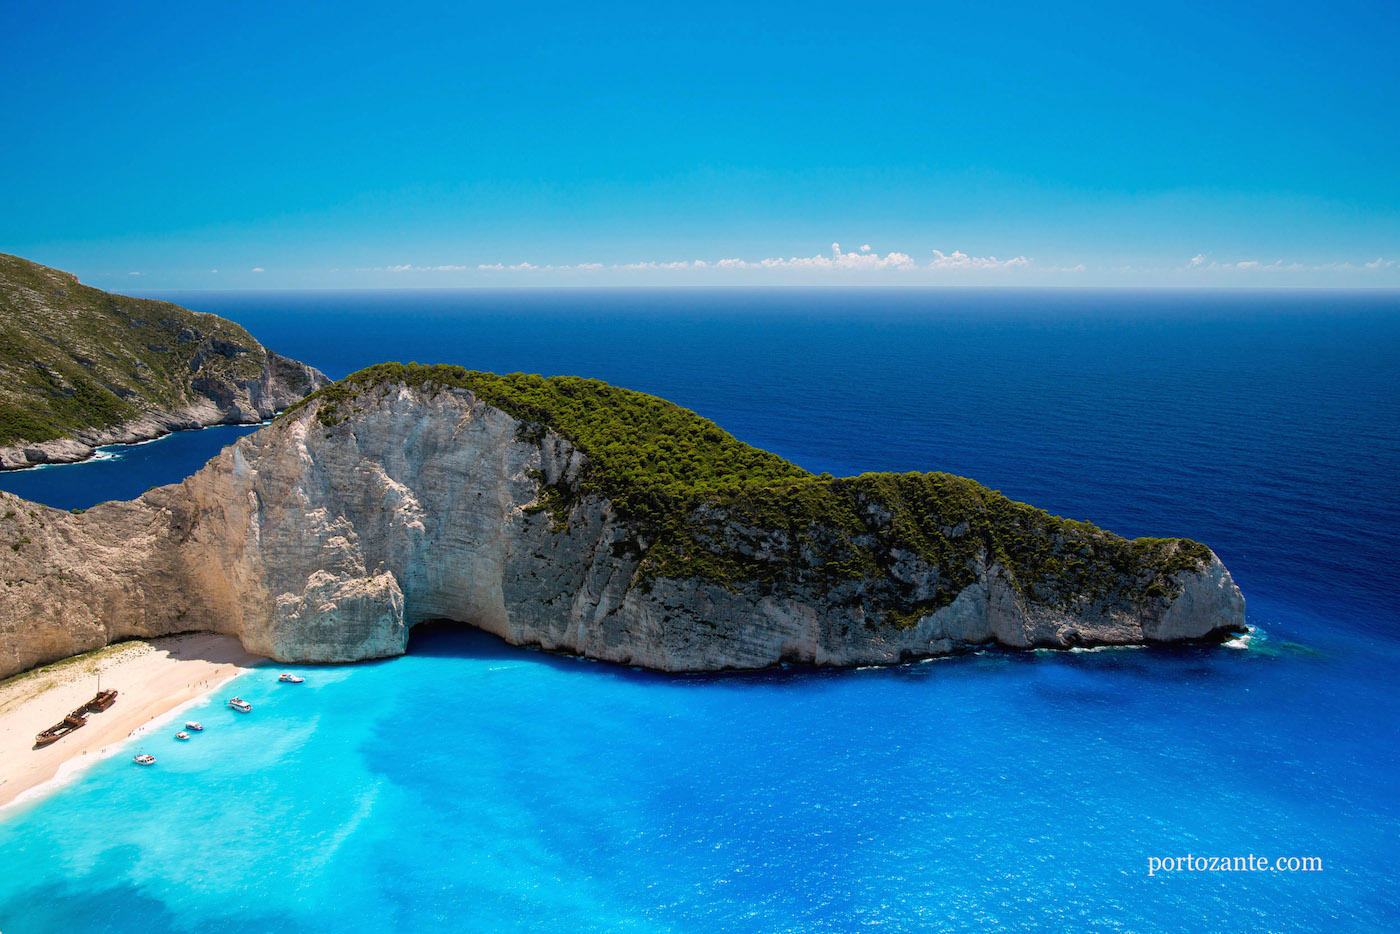 Porto Zante Greece Zakynthos Best Beach Resorts Shipwreck